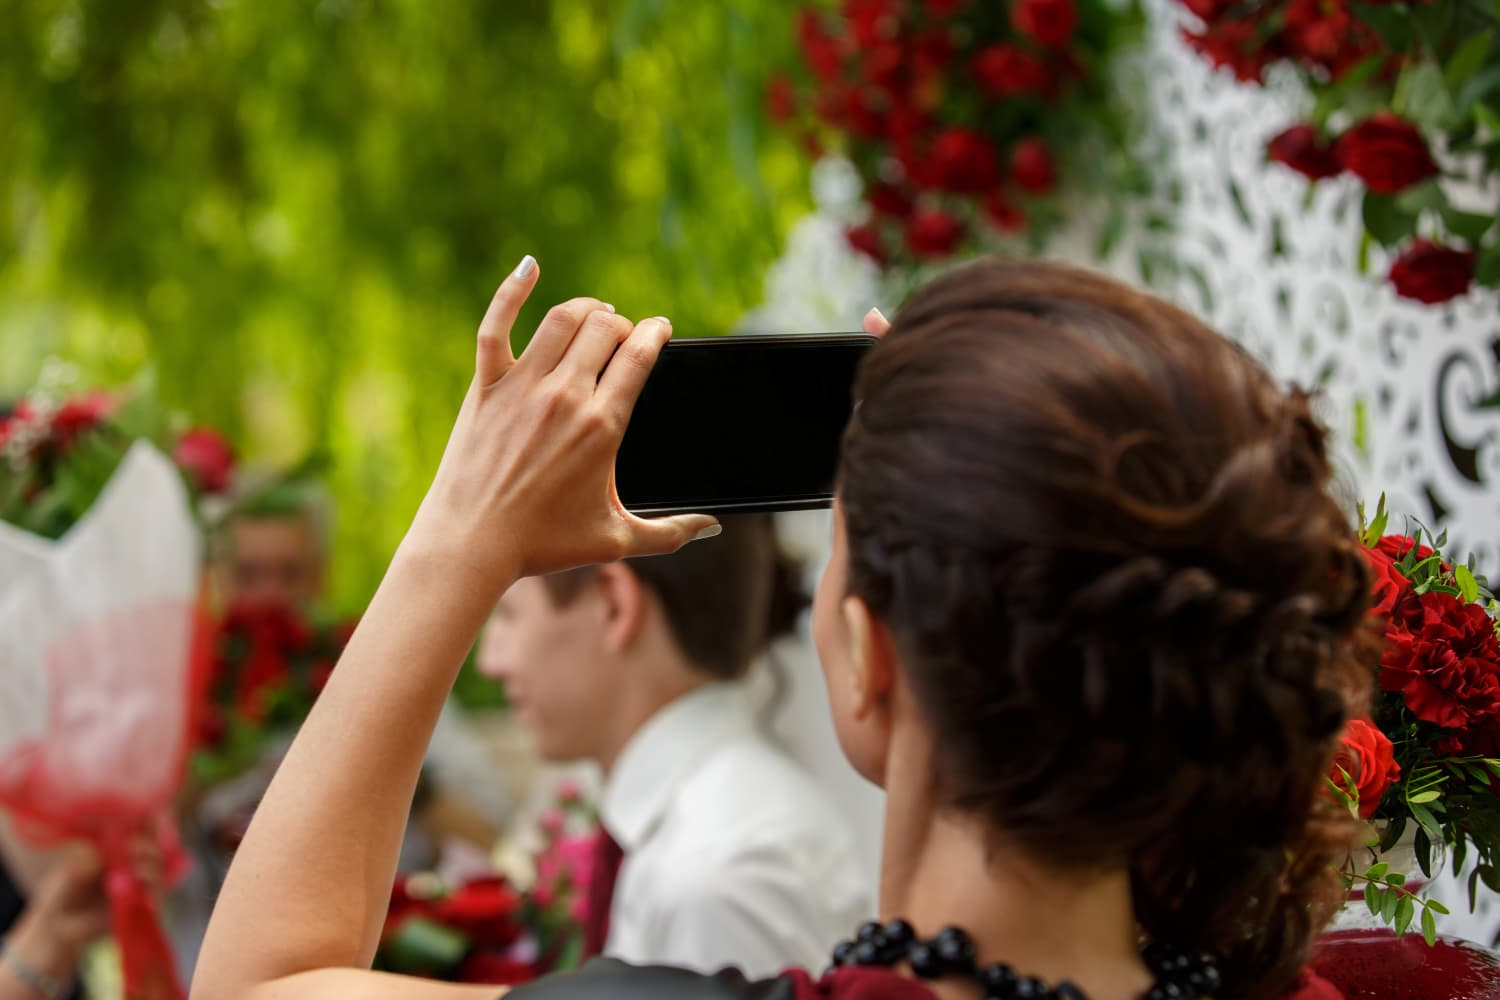 Let This Ruined Wedding Photo Remind You to Keep Your Phone in Your Pocket